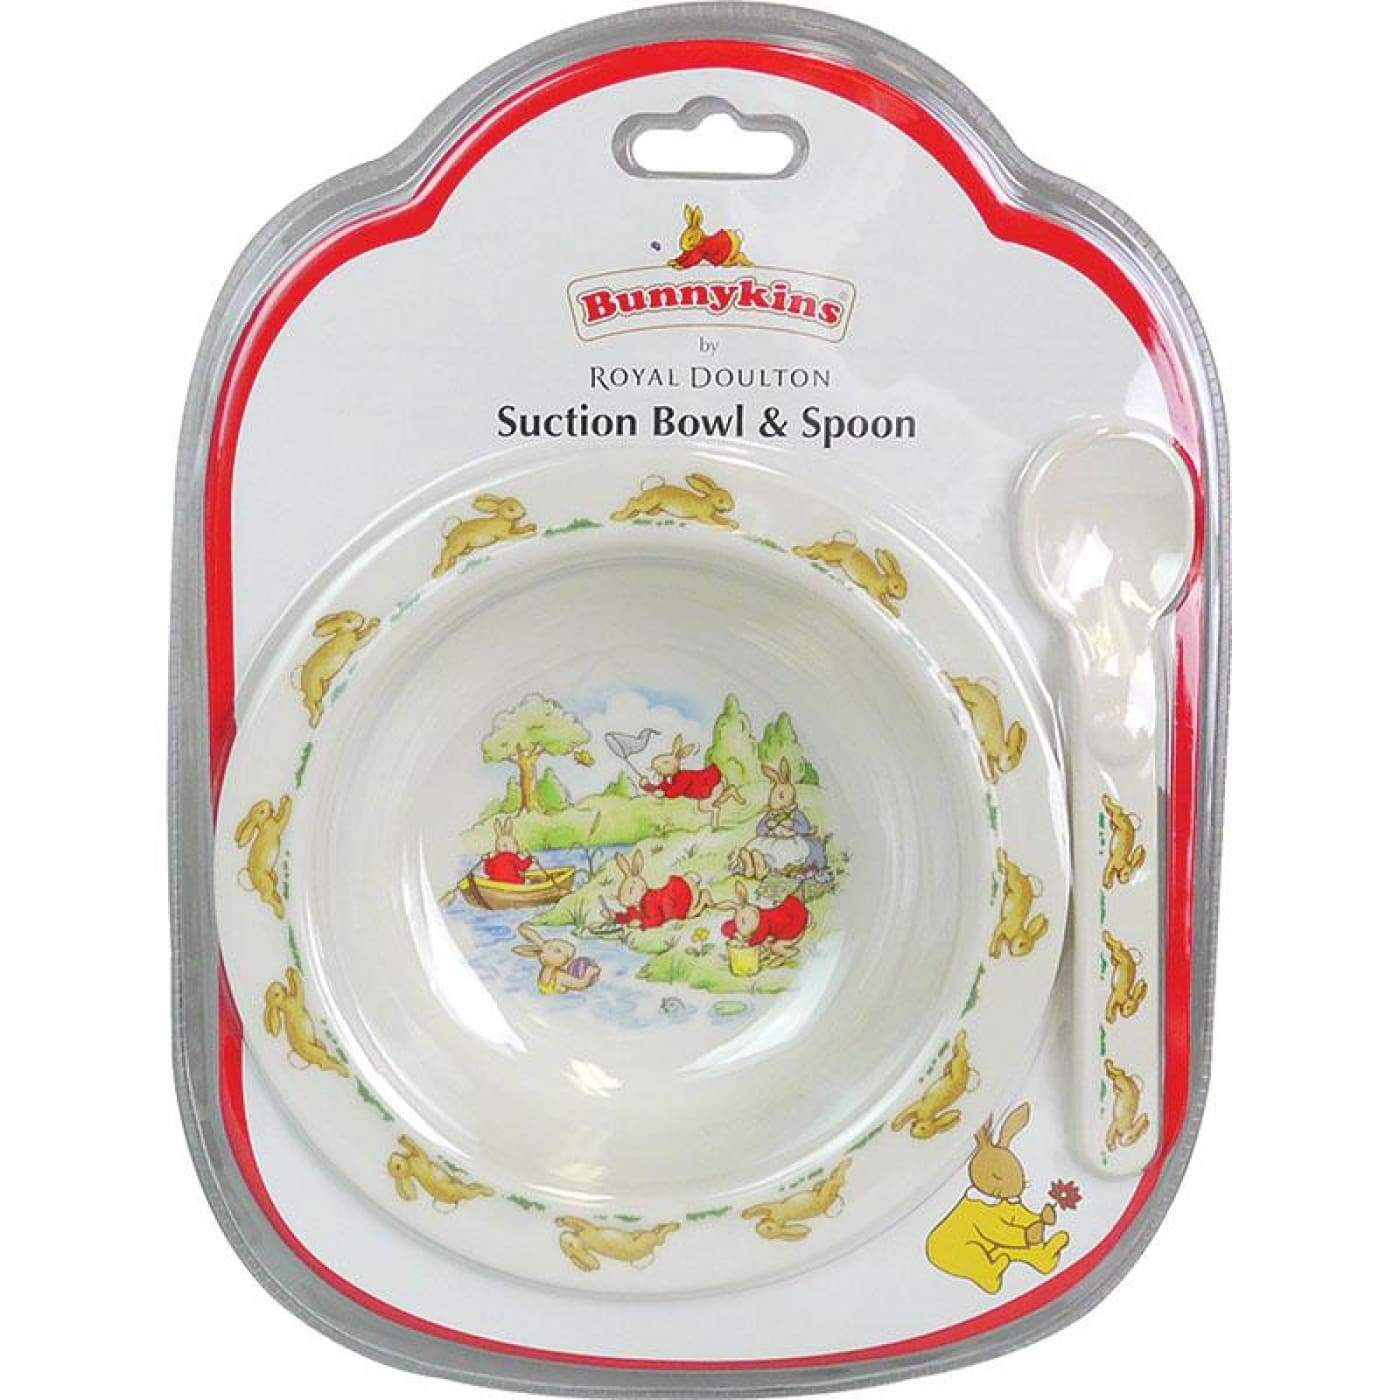 Bunnykins Suction Bowl & Spoon - Red - NURSING & FEEDING - CUTLERY/PLATES/BOWLS/TOYS